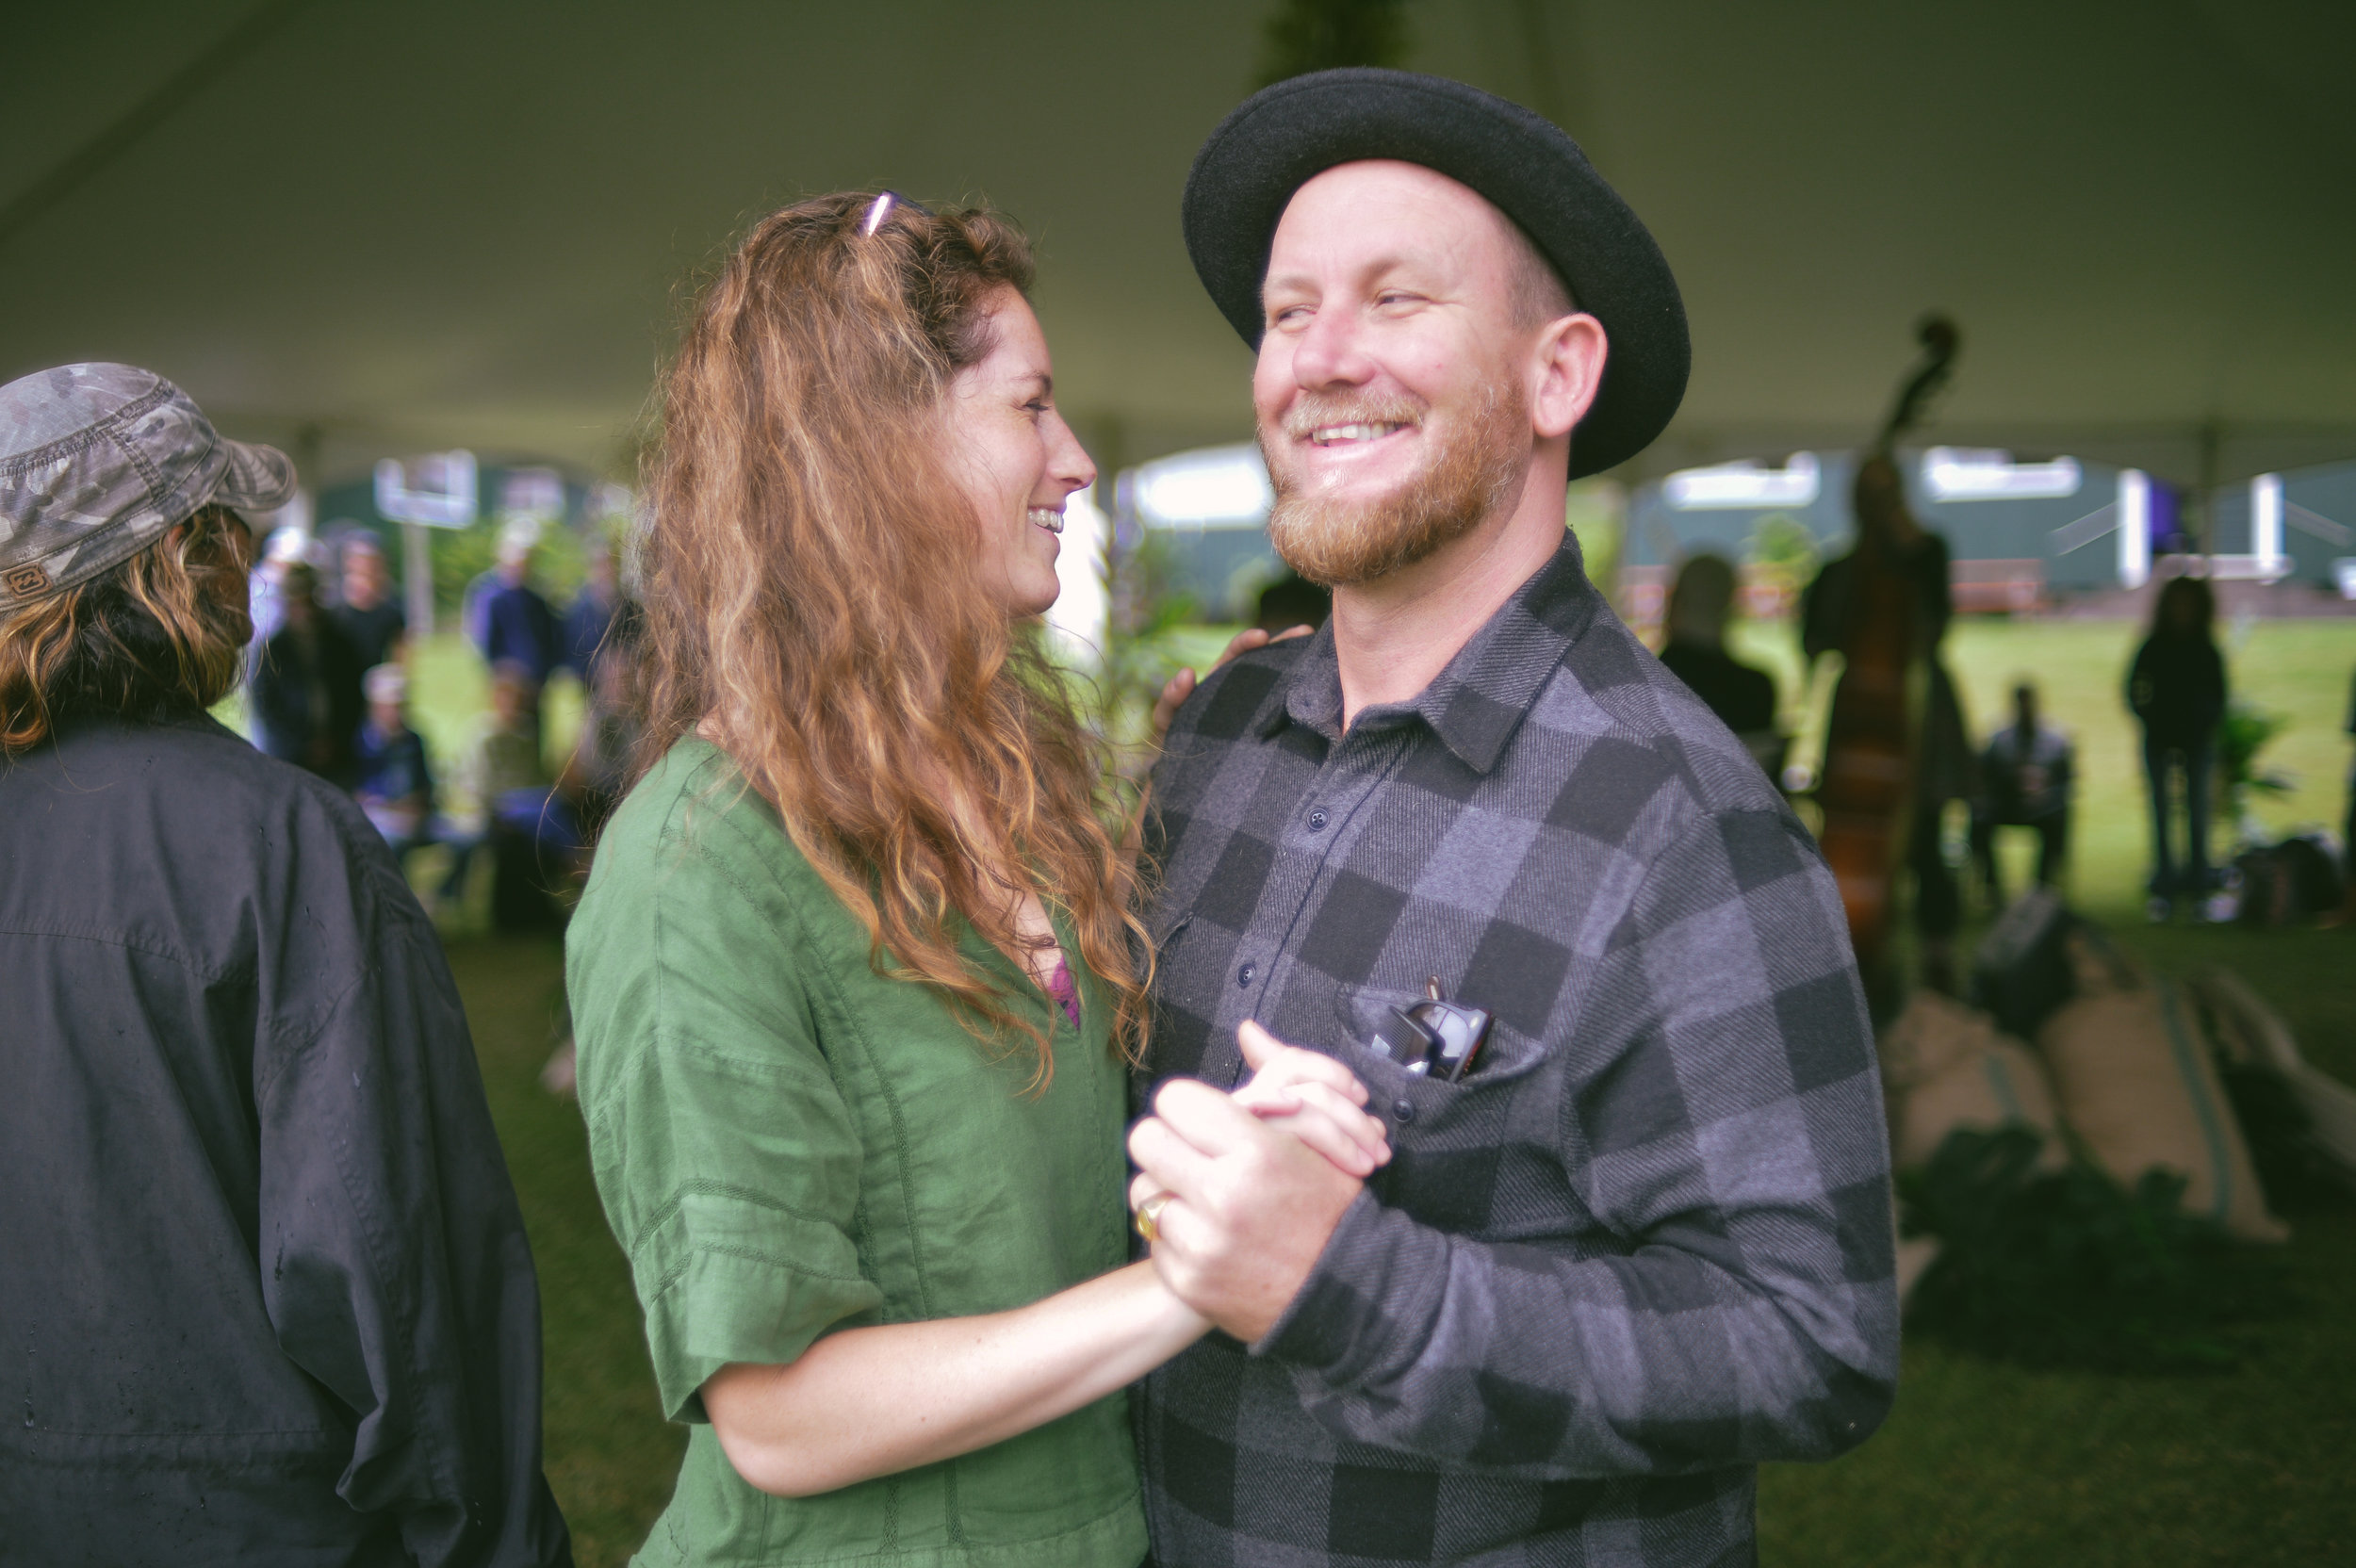 Cait Ellis of Lowbiscus and Kilin Reece share a dance at KOTG 2018